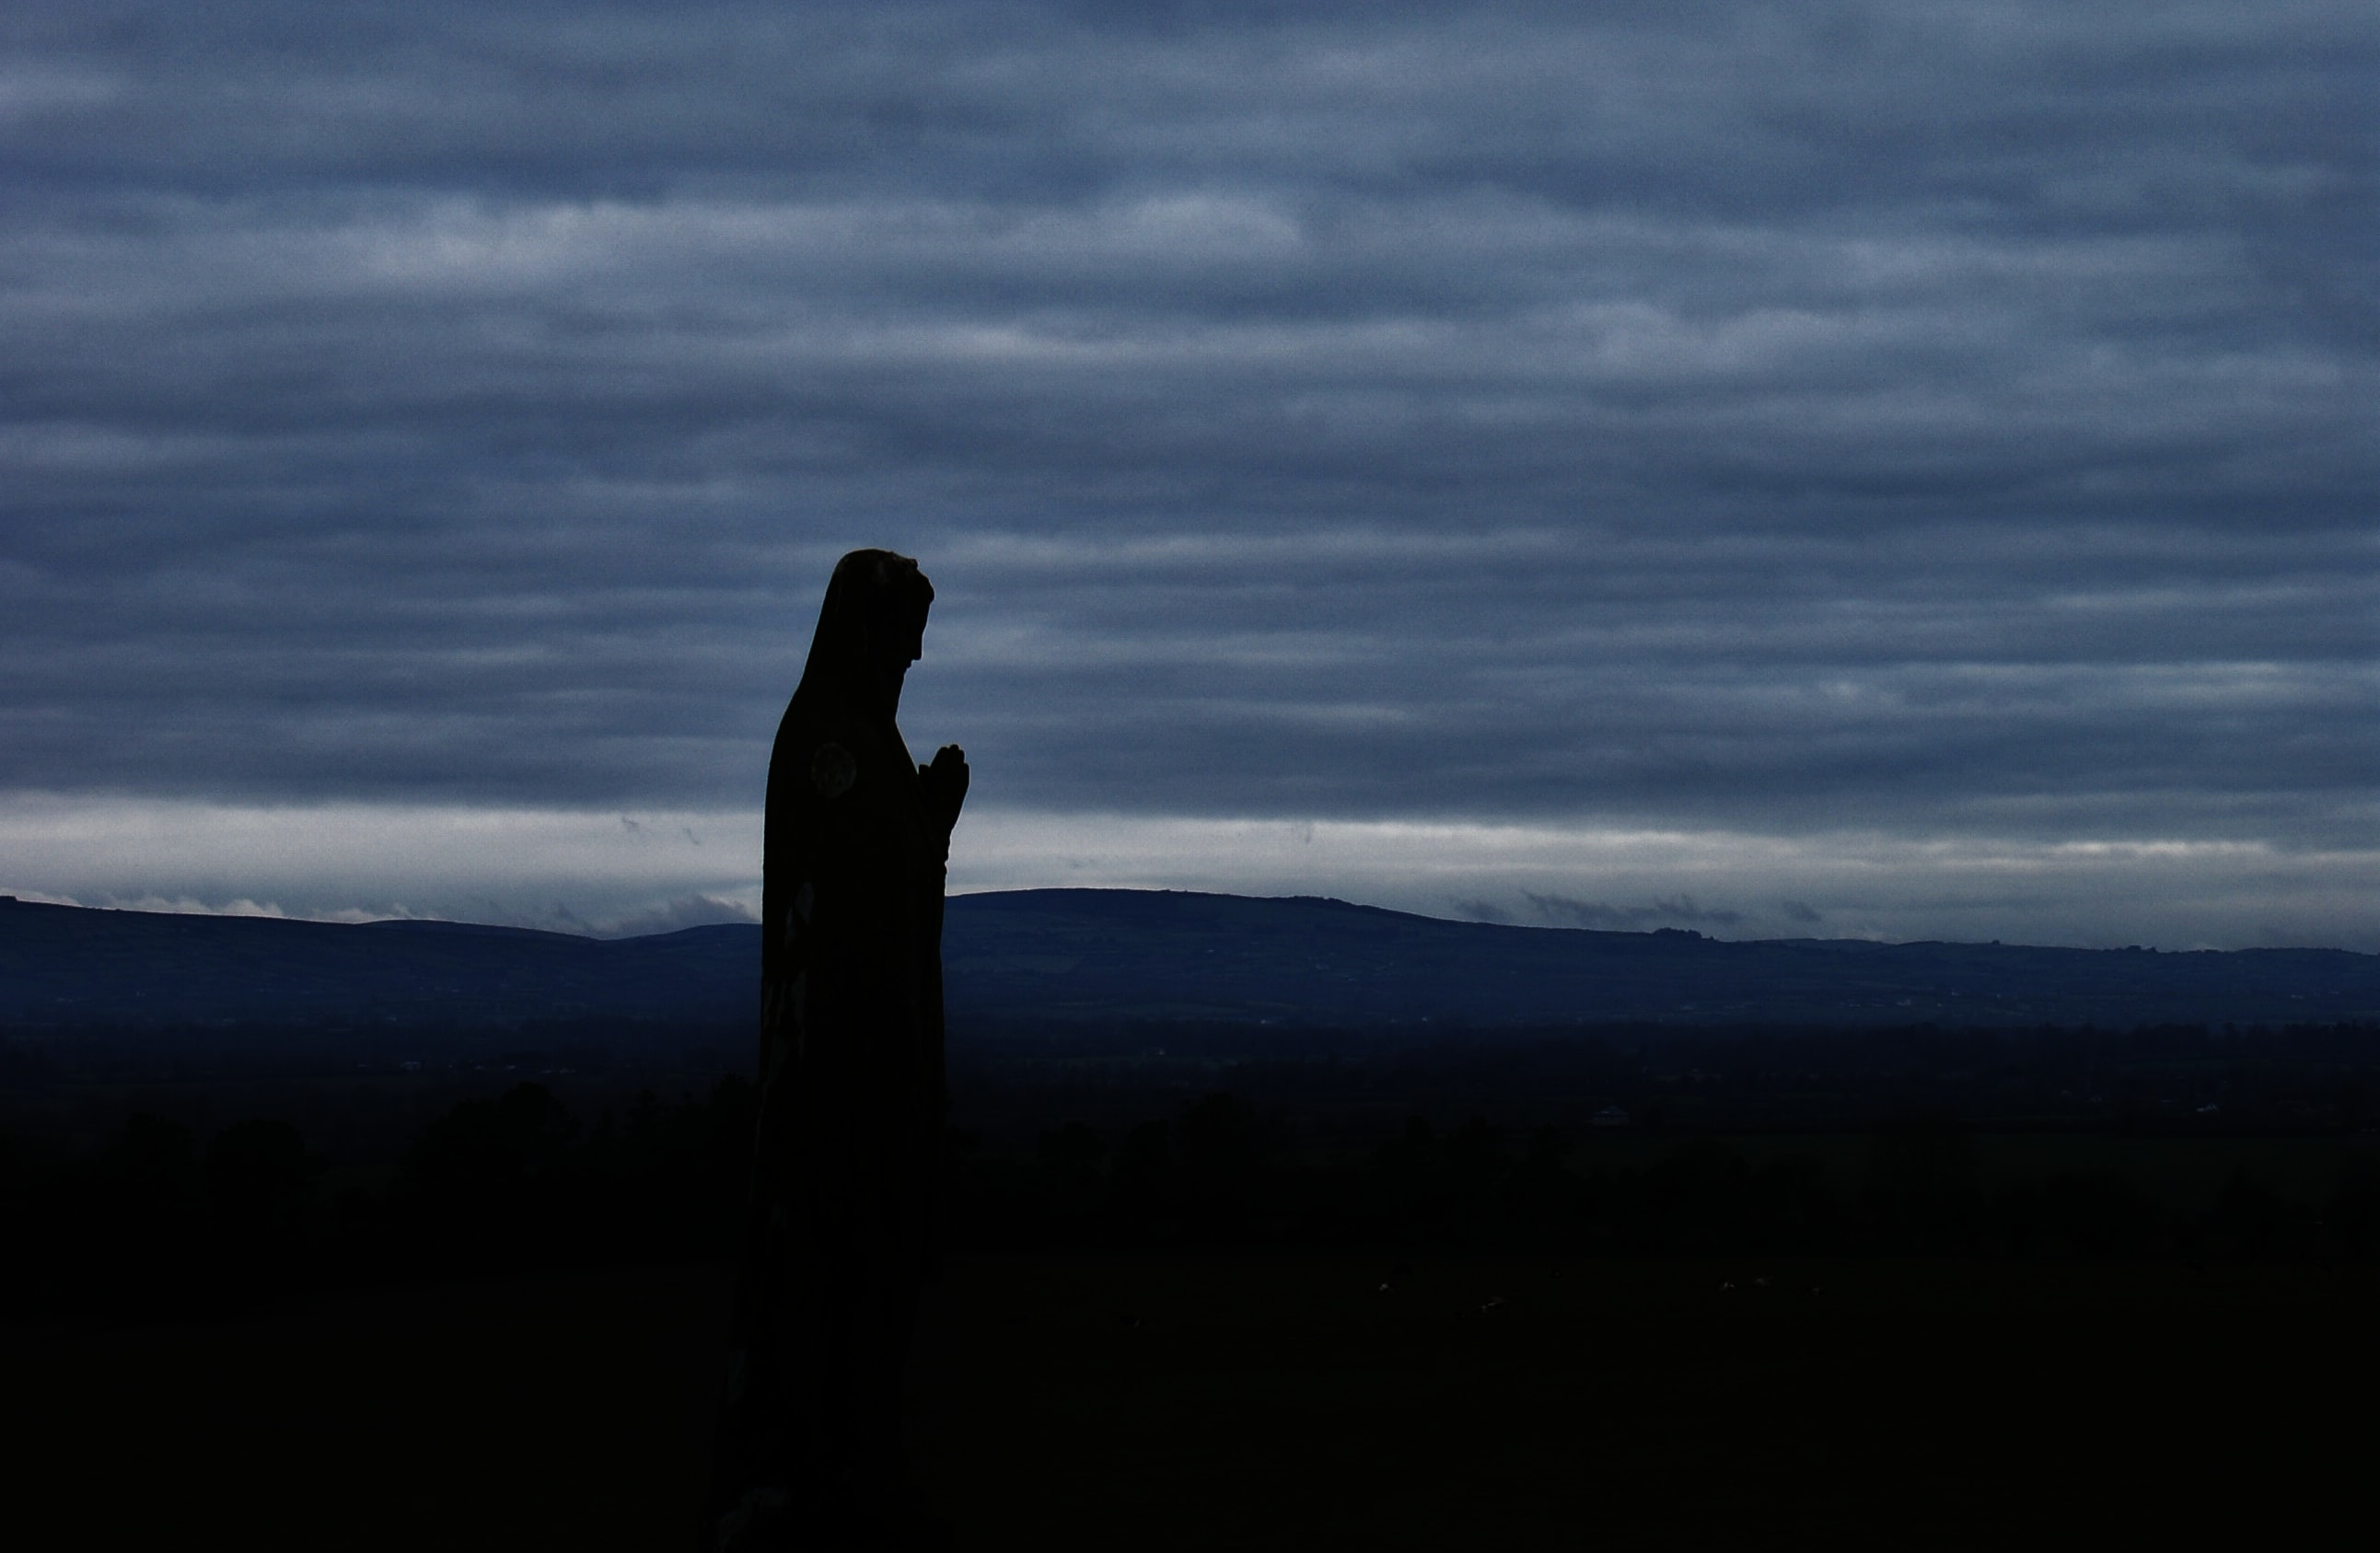 The Miracle of Fatima